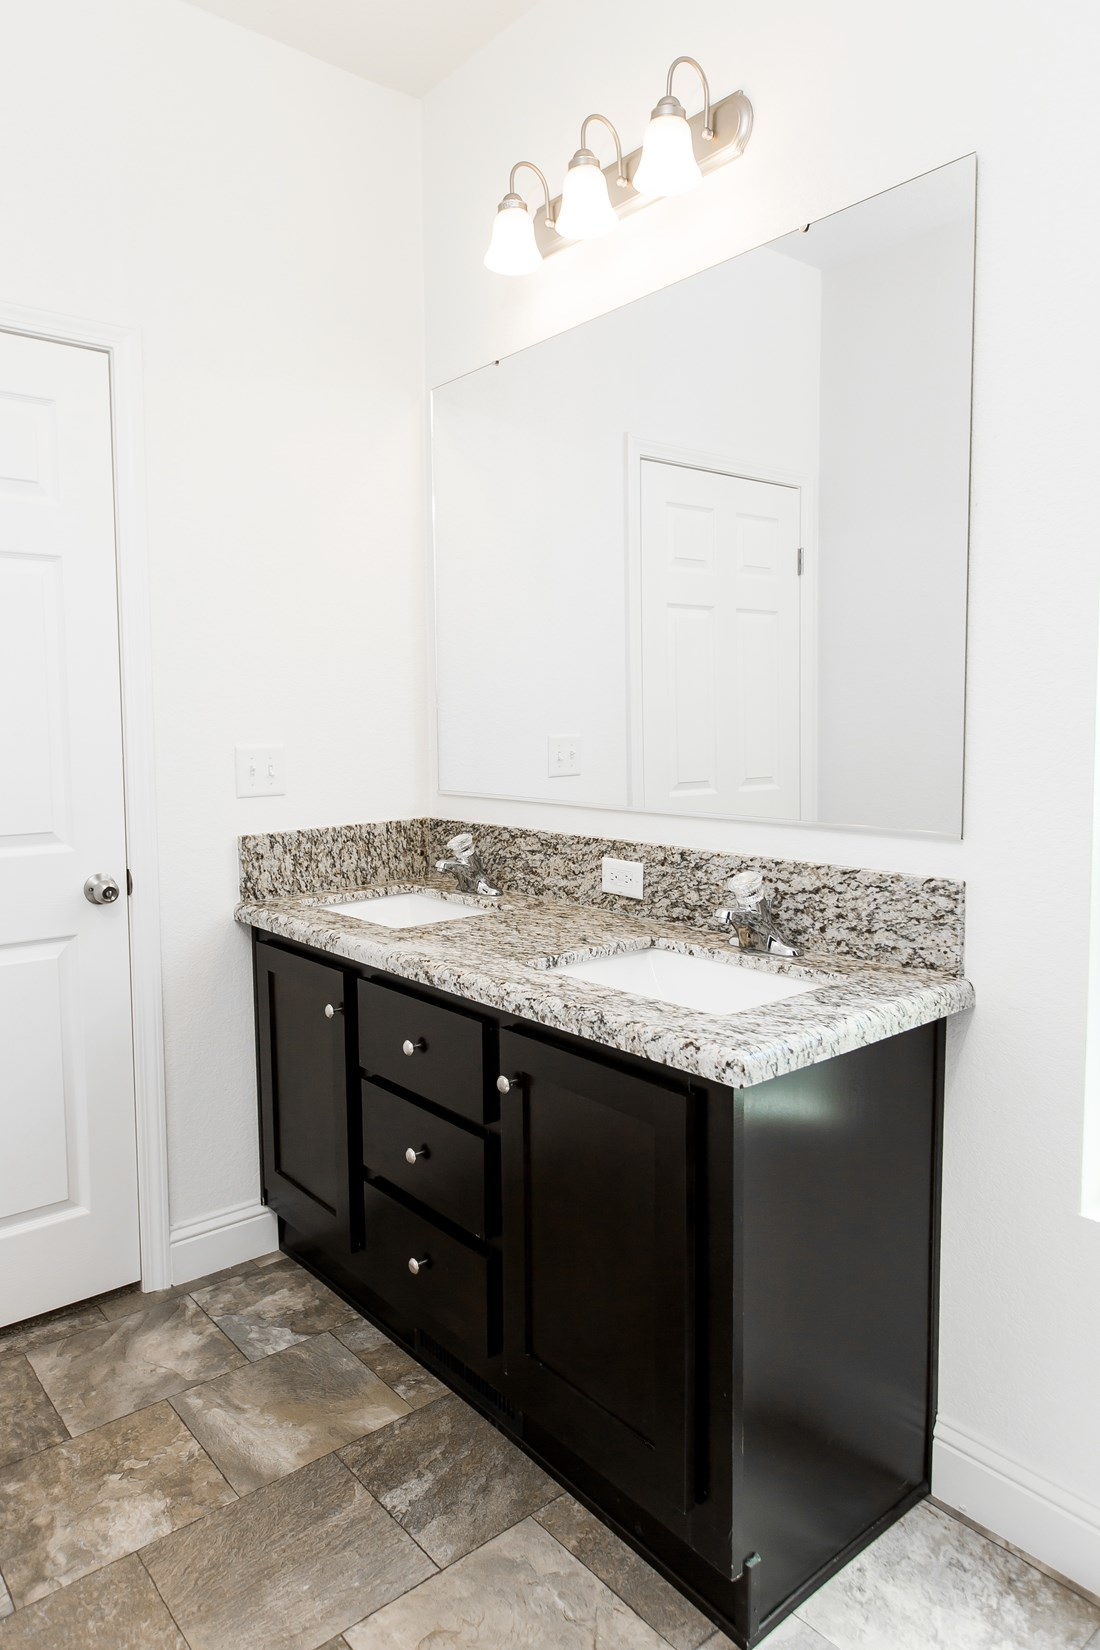 The GLE561A Guest Bathroom. This Manufactured Mobile Home features 3 bedrooms and 2 baths.